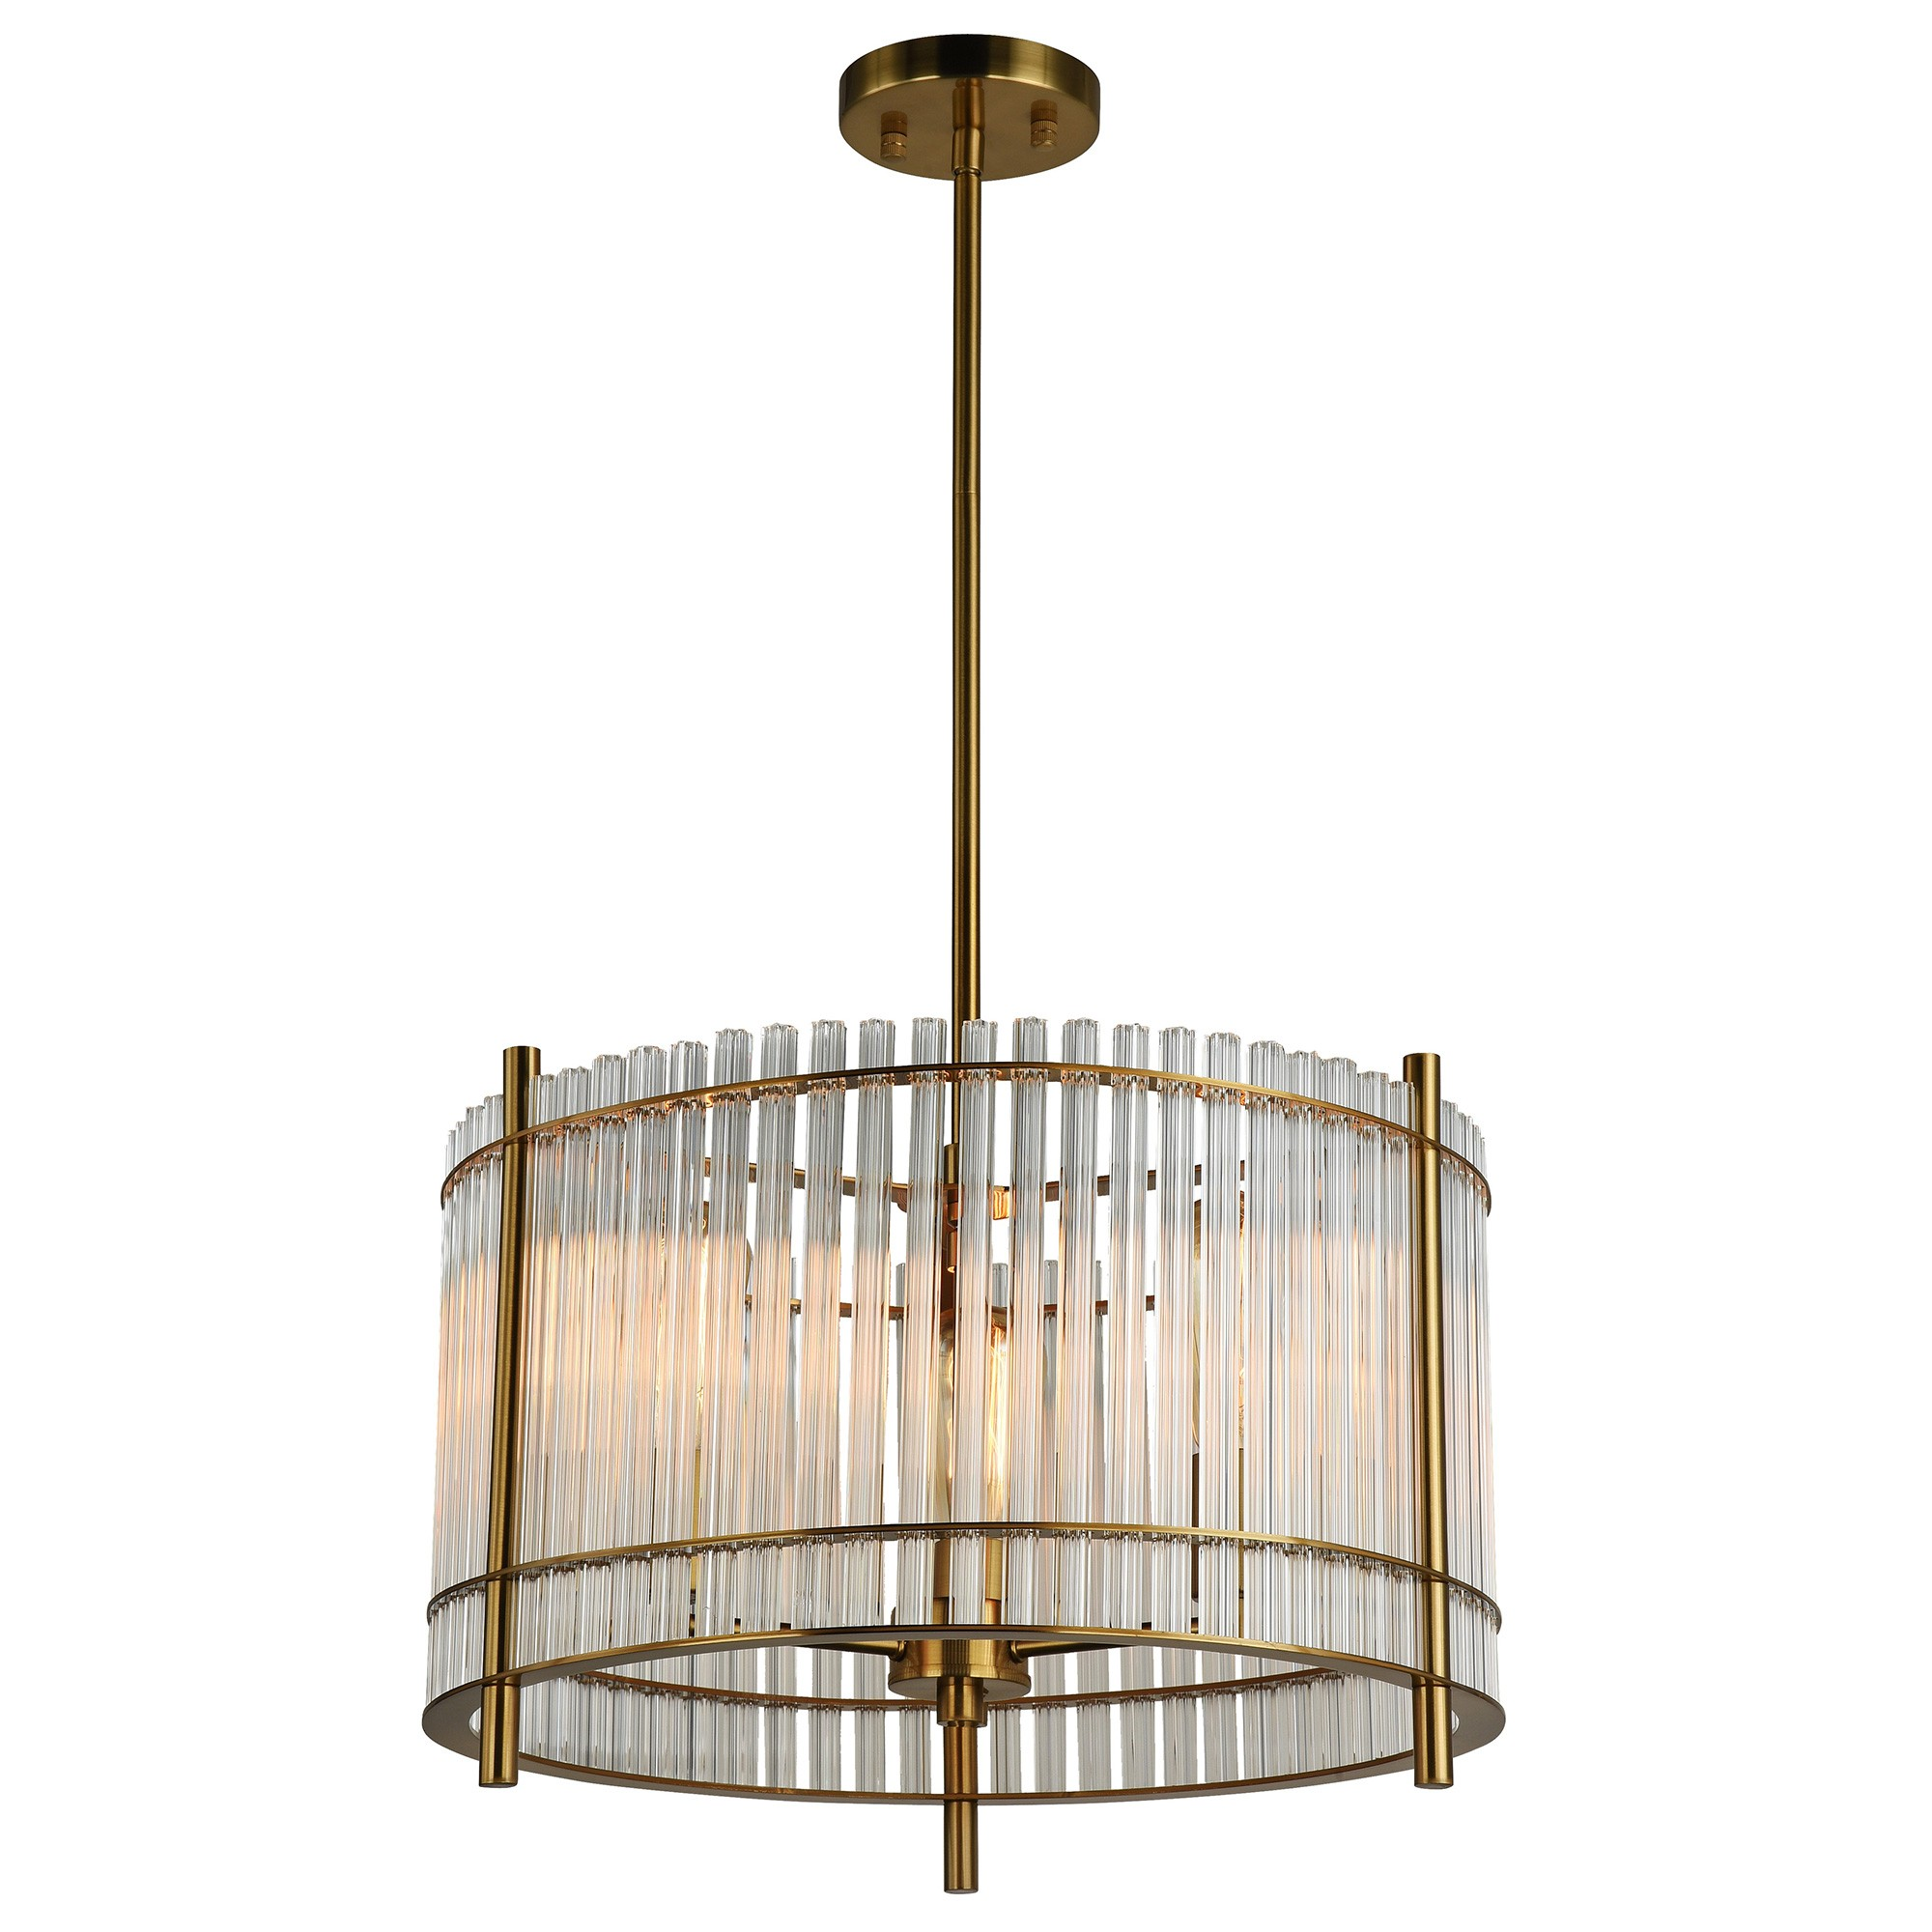 Indio Steel & Glass Pendant Light, Medium